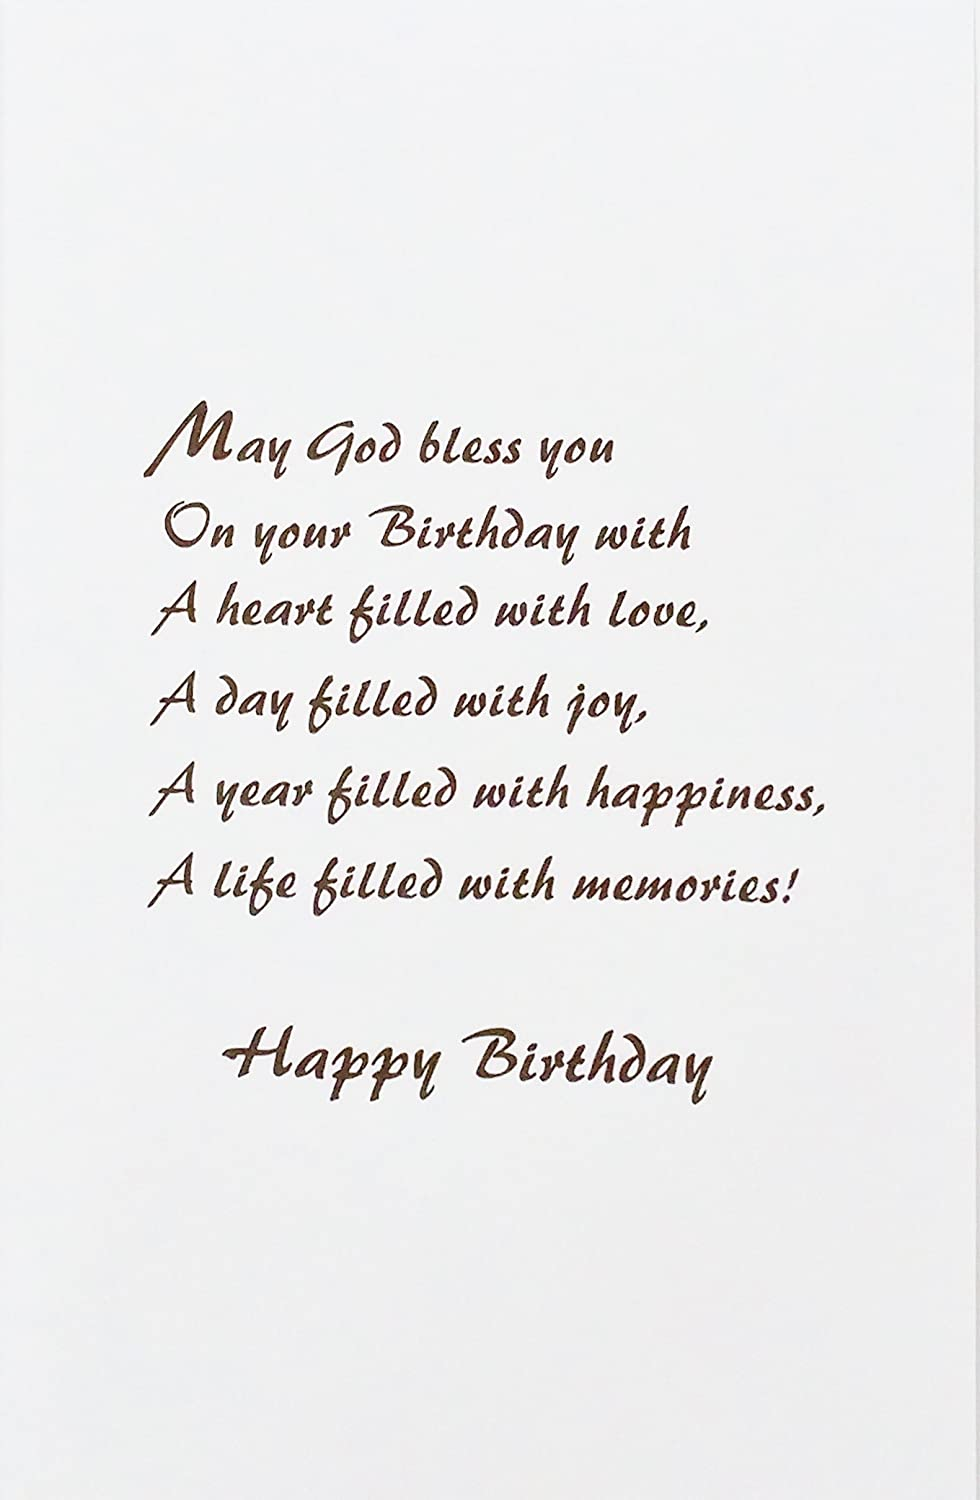 Amazon The Lord Bless You On Your 80th Birthday Religious Greeting Card